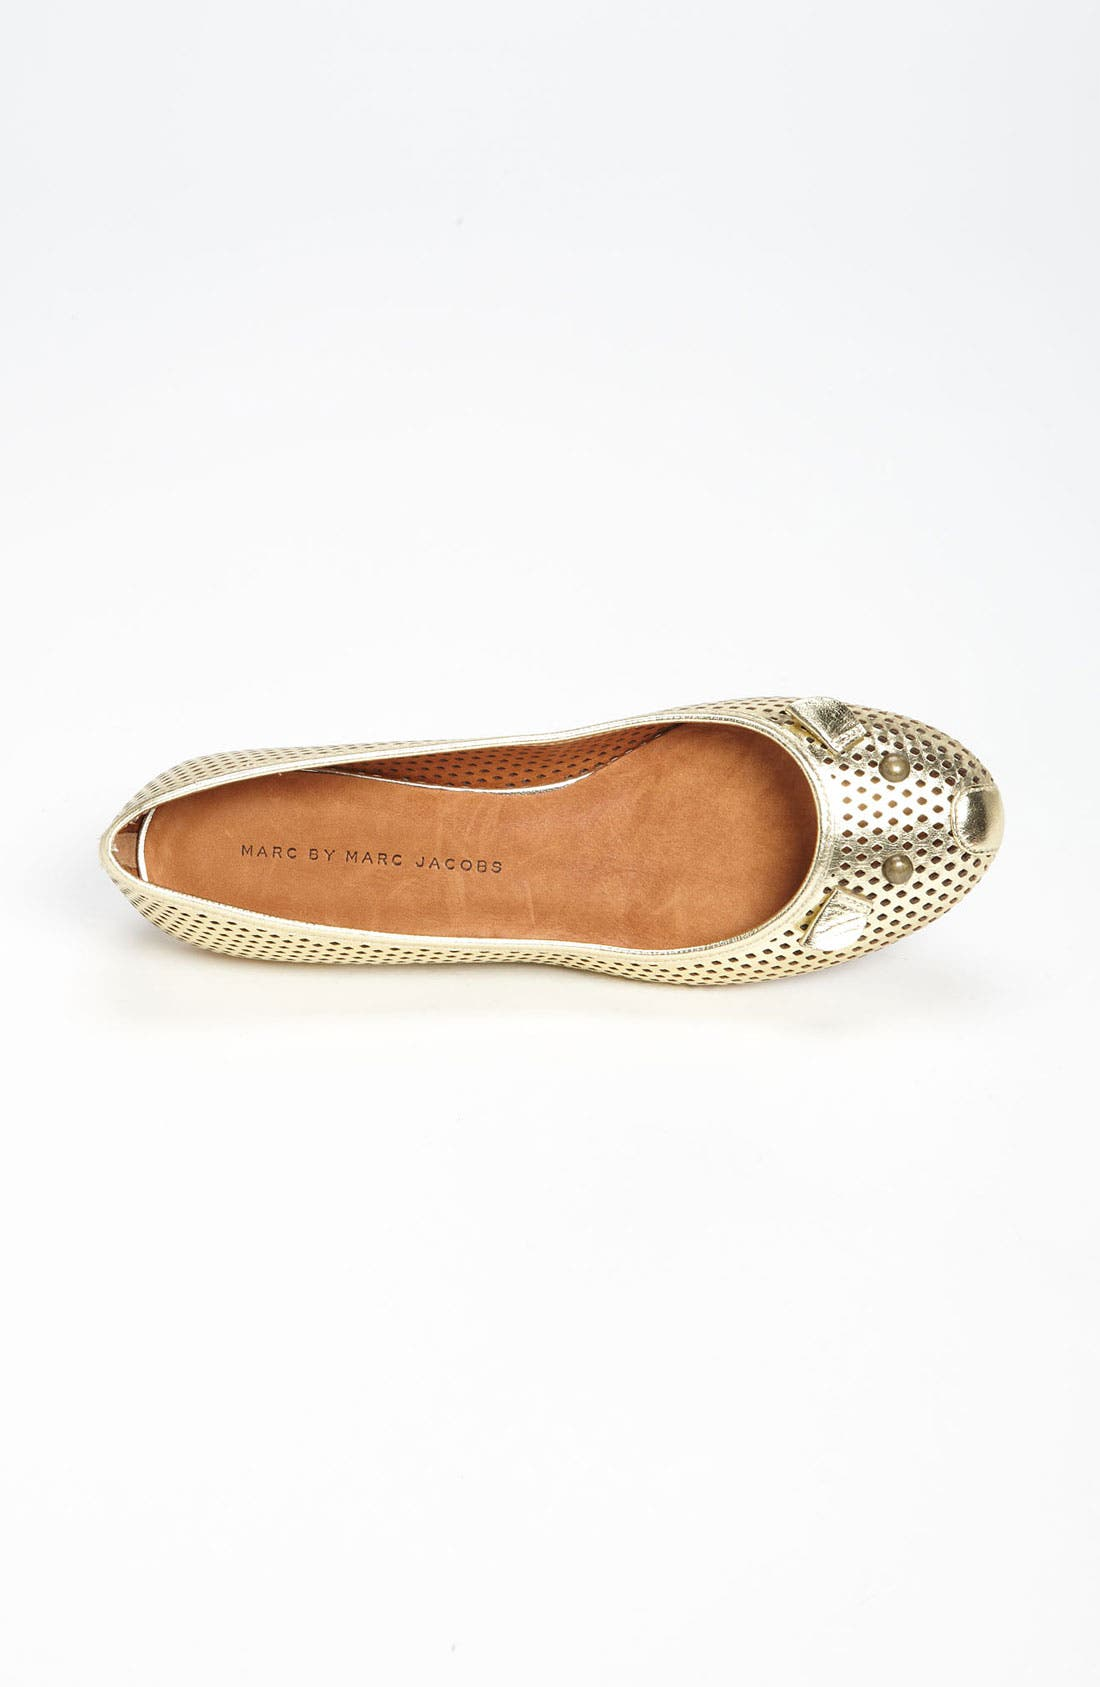 MARC BY MARC JACOBS 'Mouse' Ballet Flat,                             Alternate thumbnail 2, color,                             711